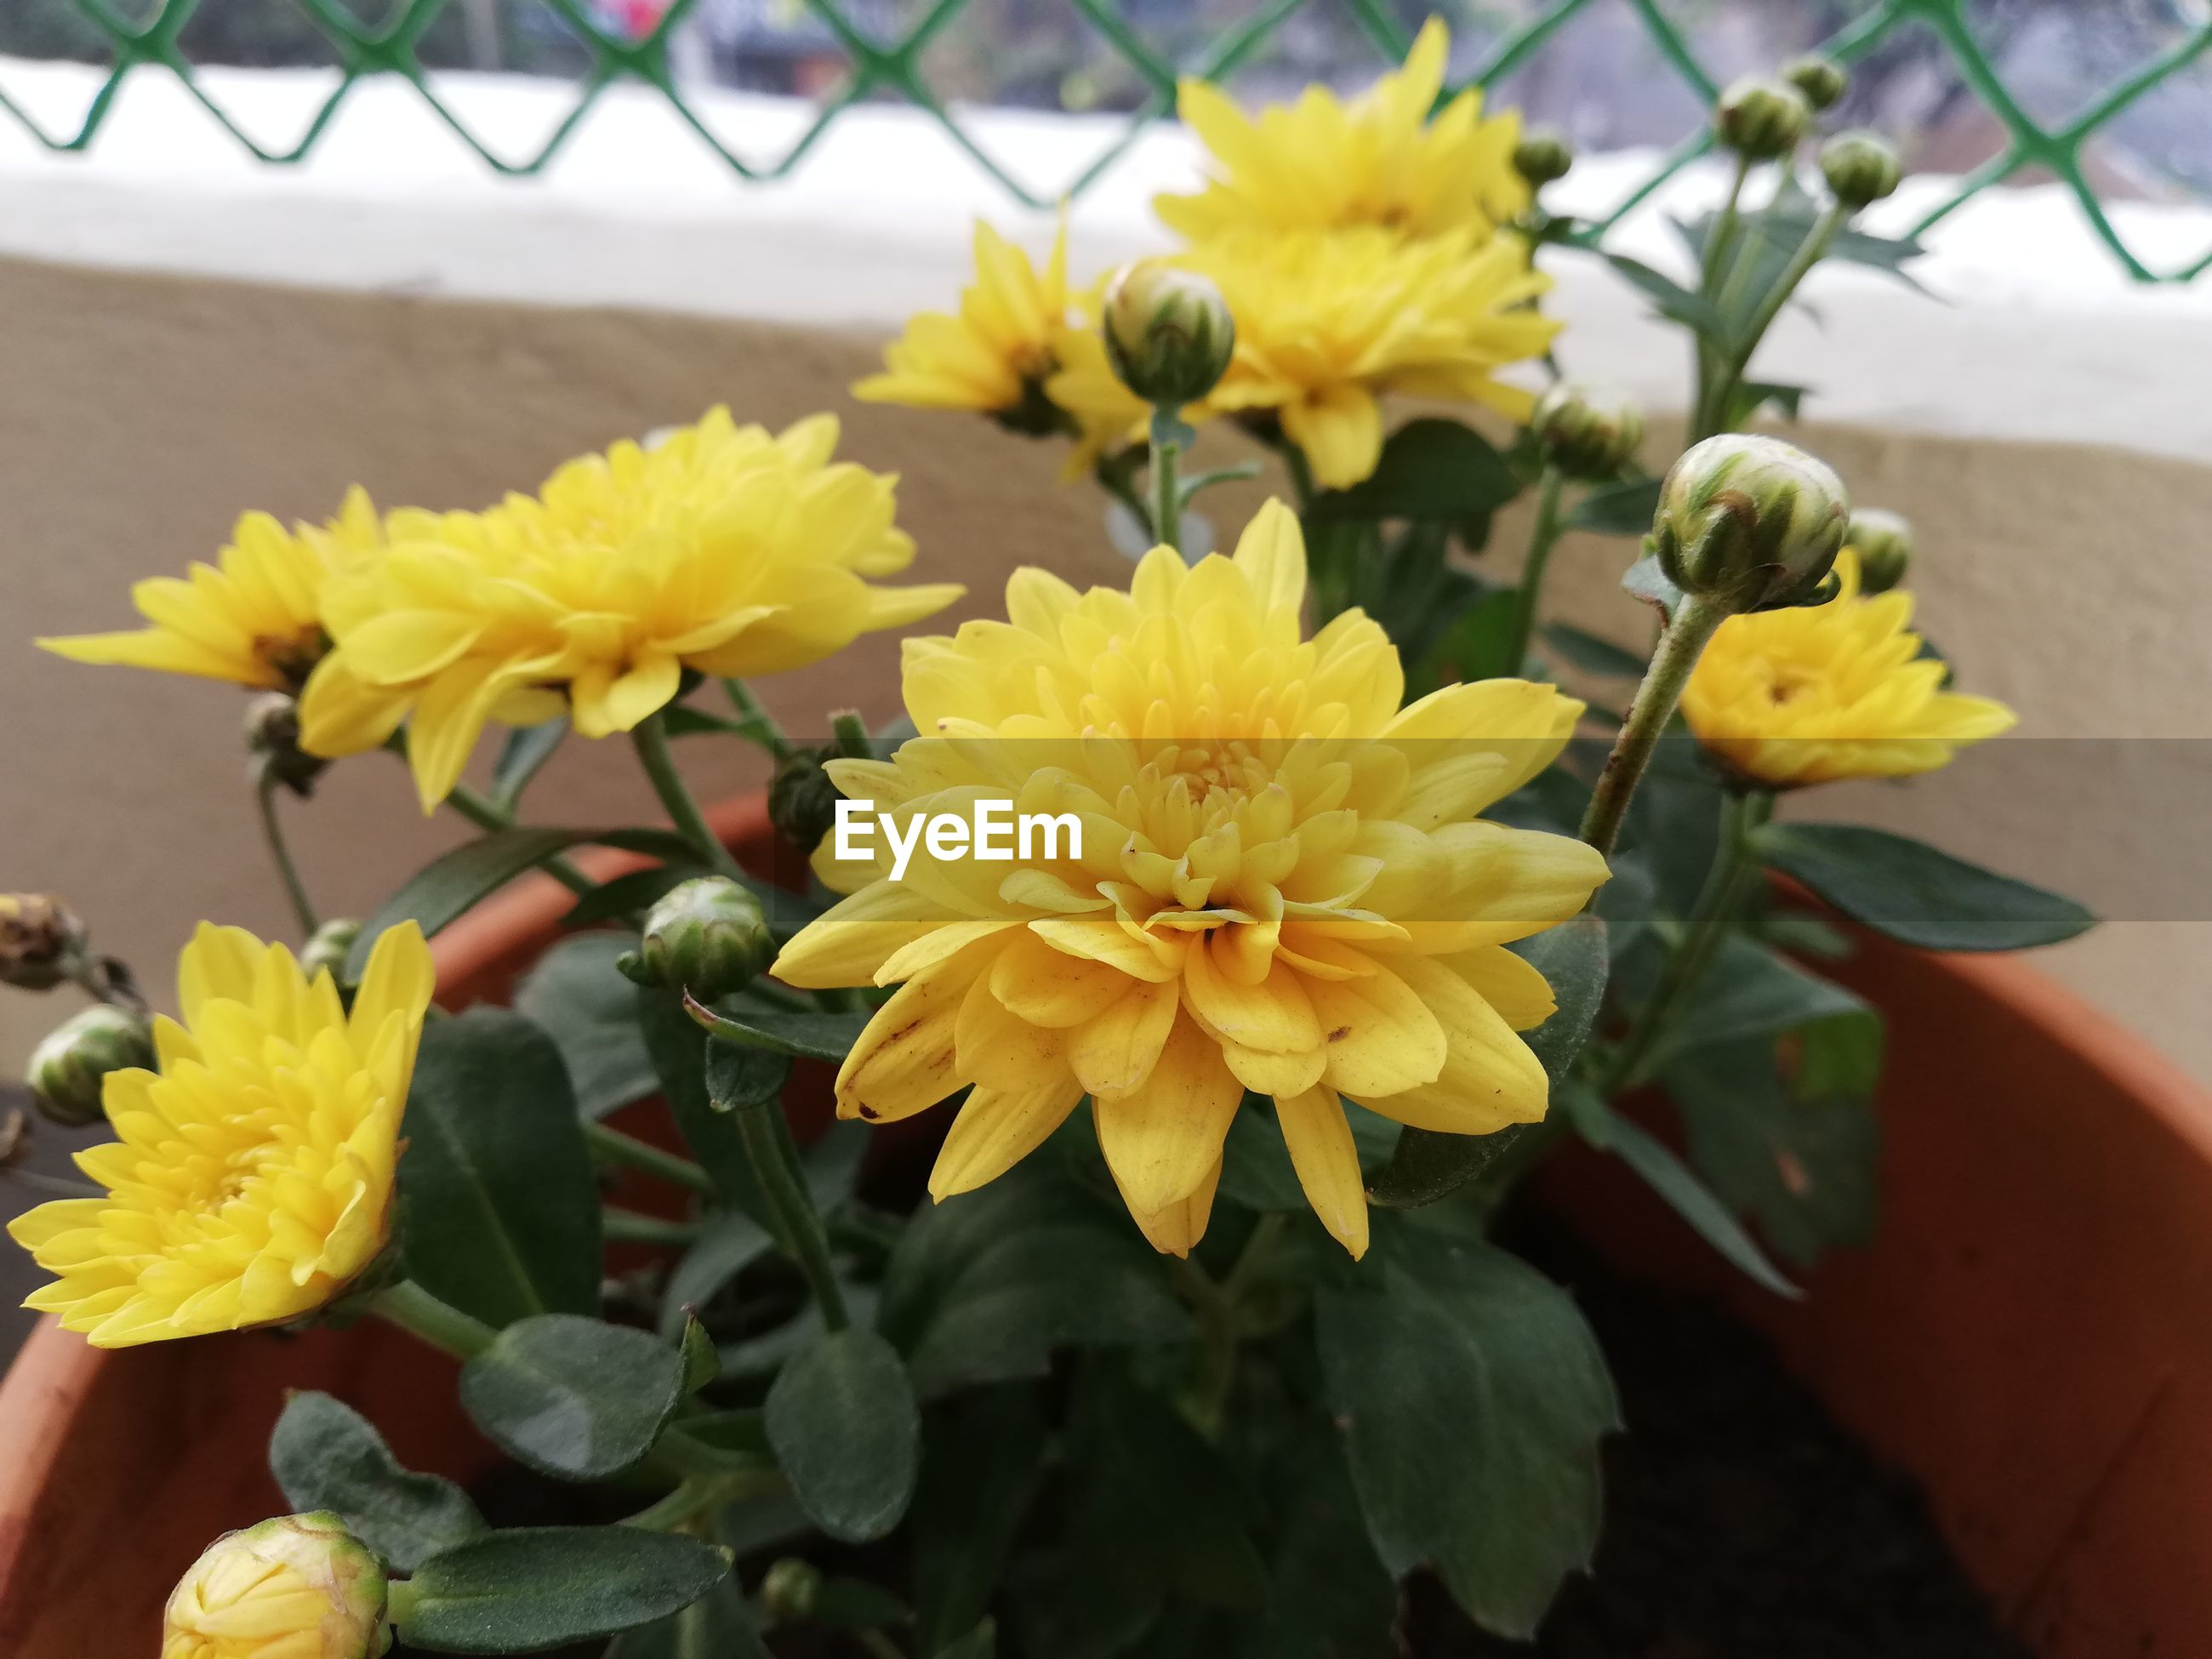 CLOSE-UP OF YELLOW FLOWERS ON PLANT